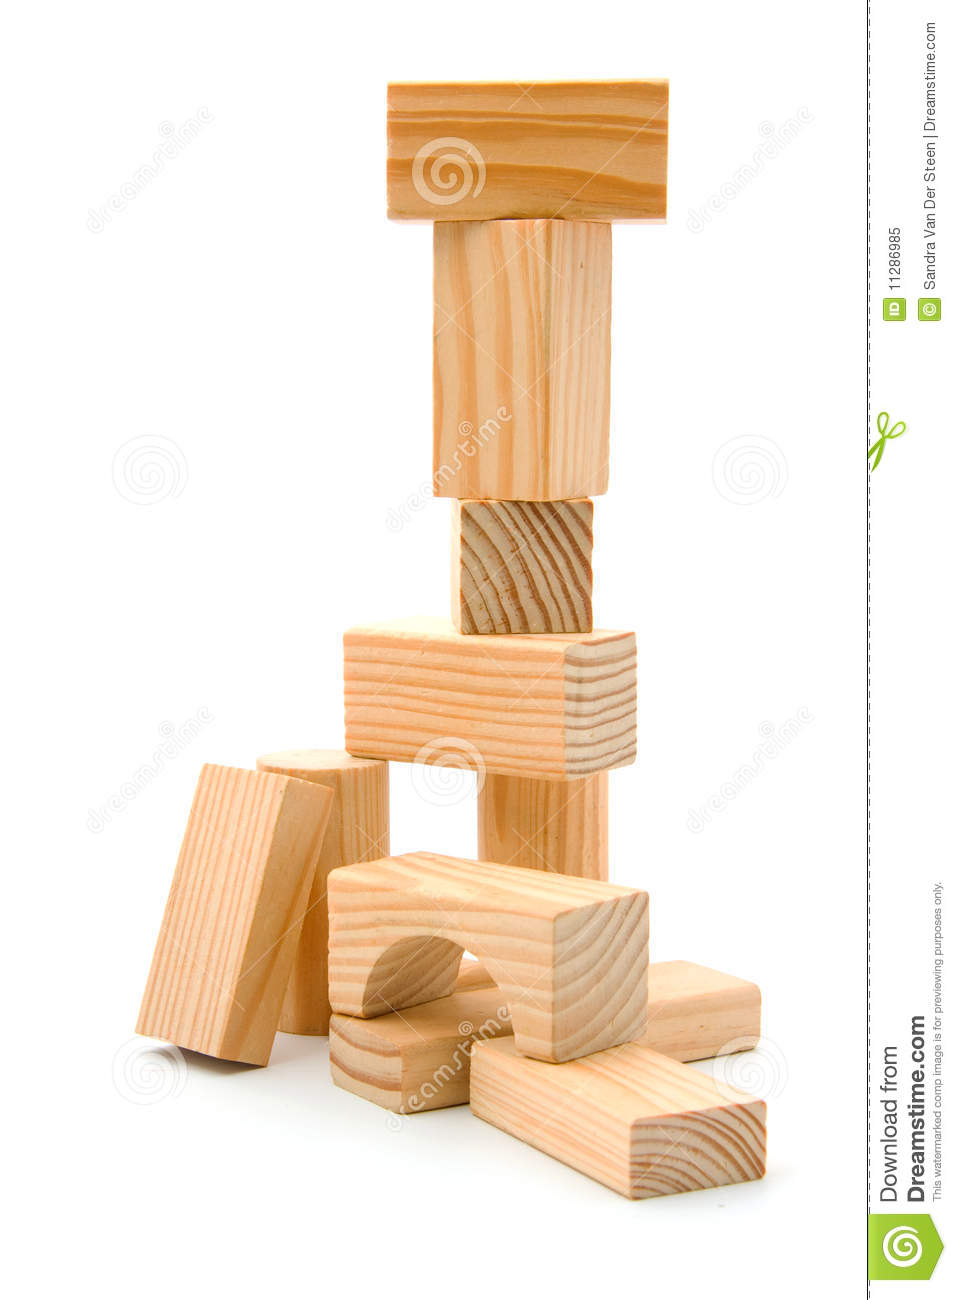 Wooden Building Blocks Royalty Free Stock Photo - Image: 11286985